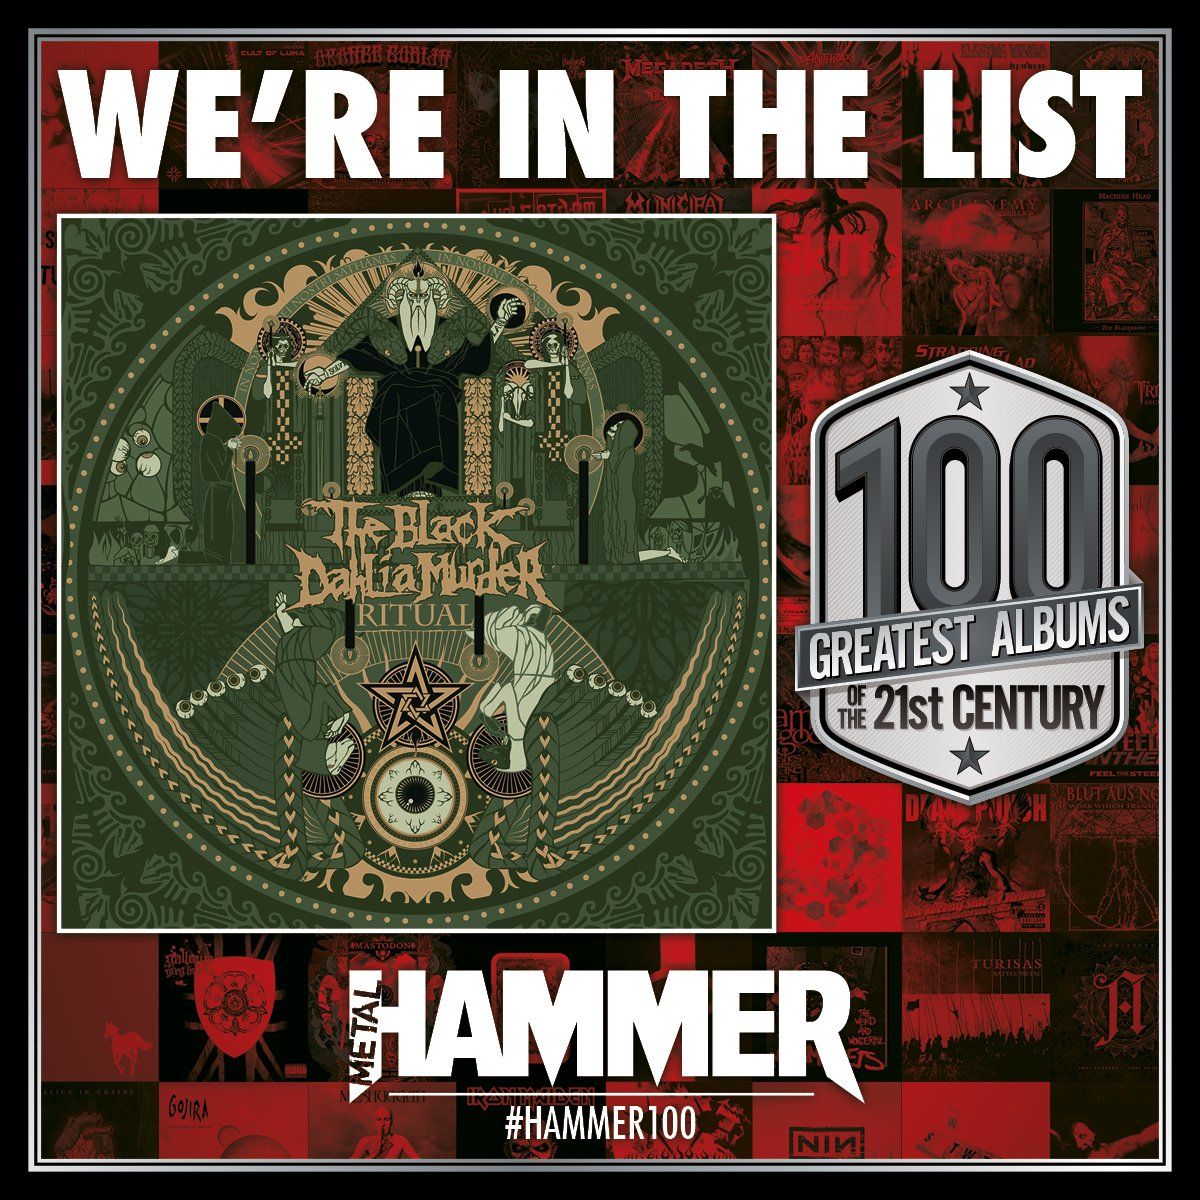 We're in @MetalHammer magazine's top 100 albums of the 21st century! Grab a copy now https://t.co/gEgFOxoaNl